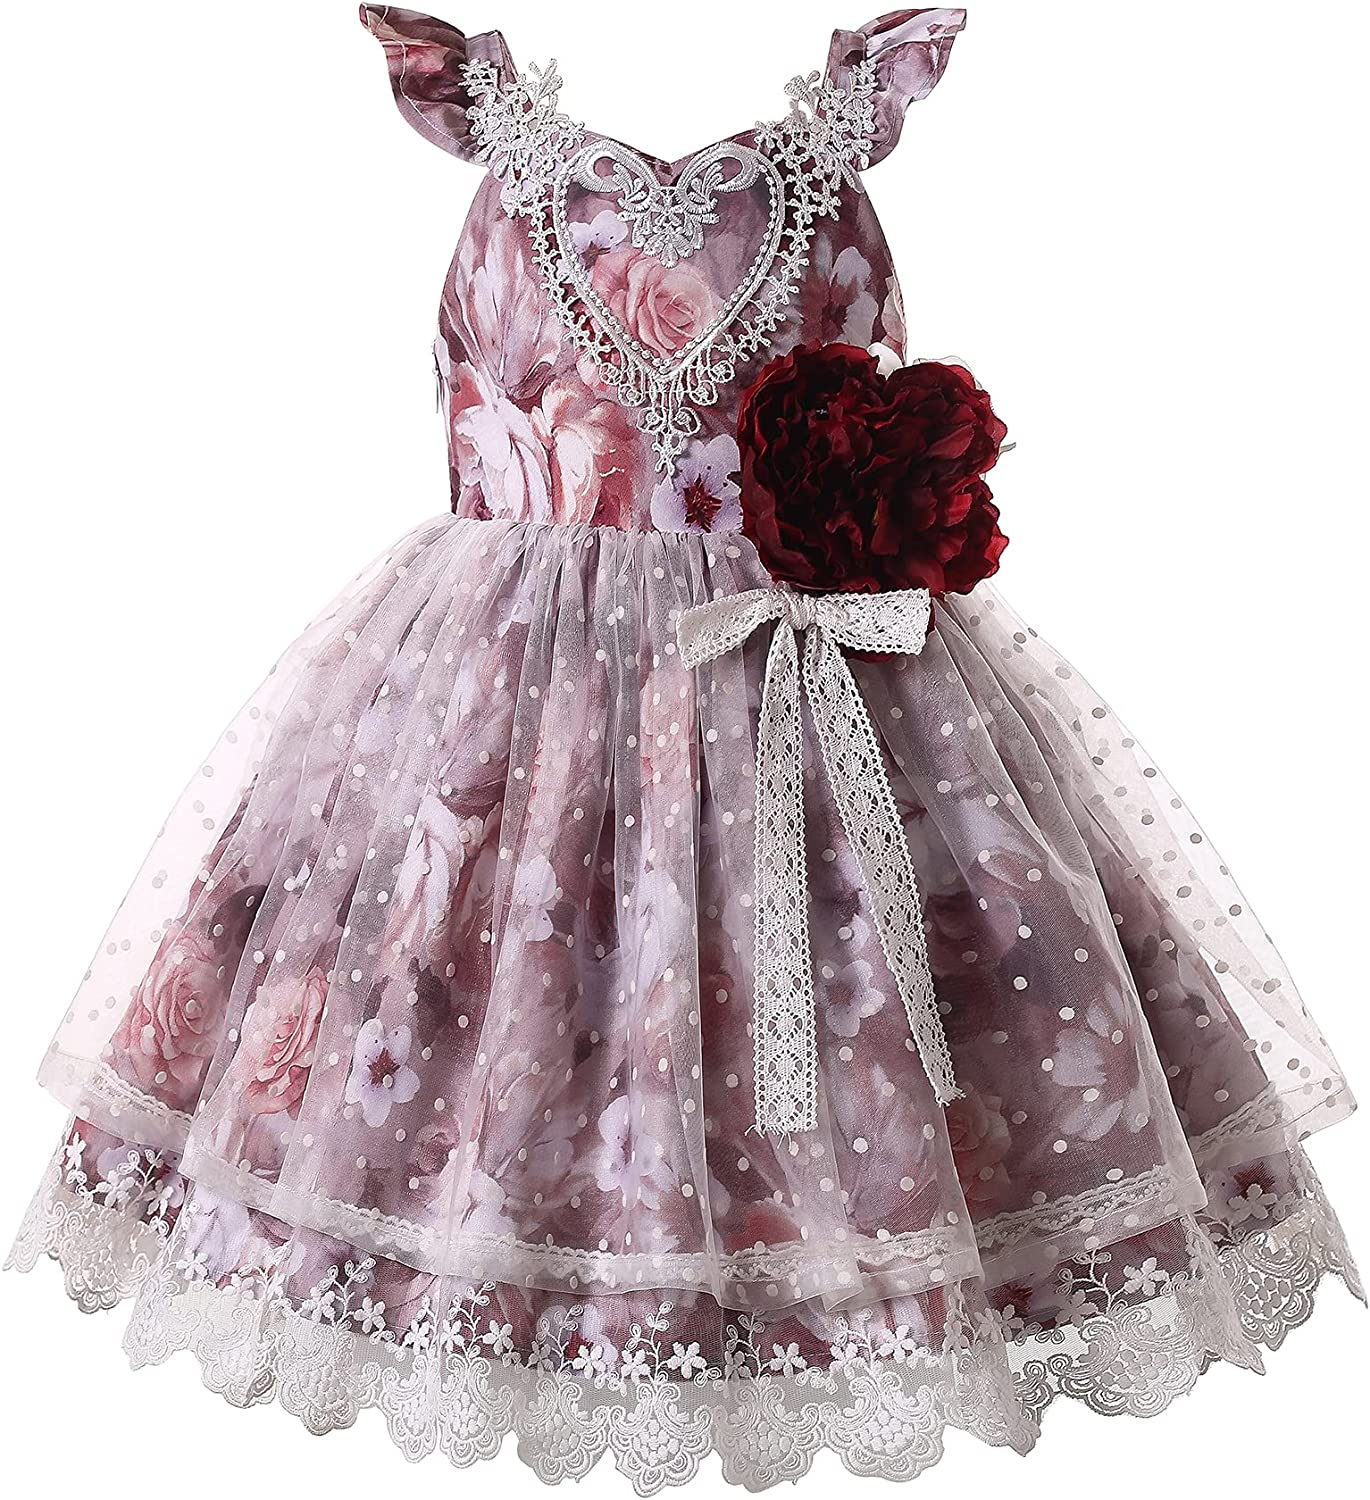 Pettgirl Girl Elegant Fuchsia Floral Lace Ruffle Clothes Kids Toddler Sweet Pageant Prom Party Princess Fashion Dresses